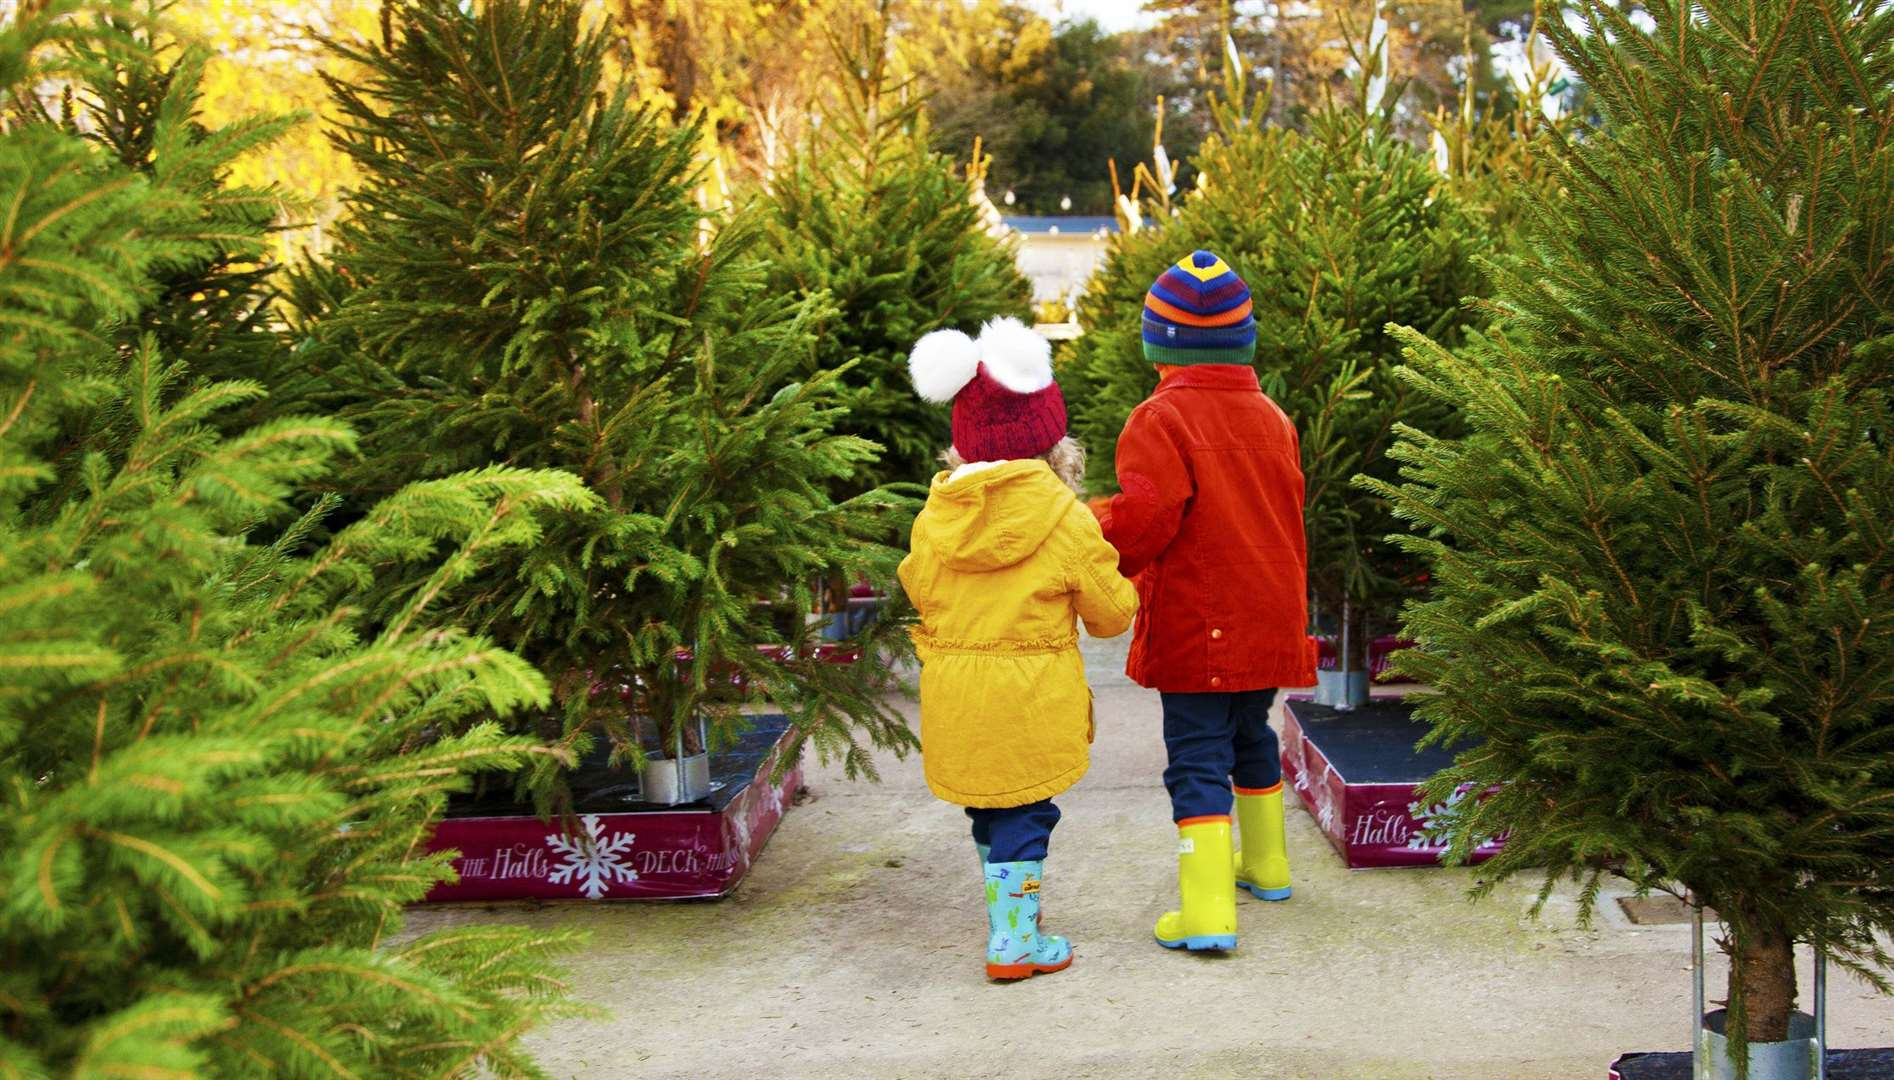 This Saturday and Sunday is predicted to be a popular time for finding a real Christmas tree